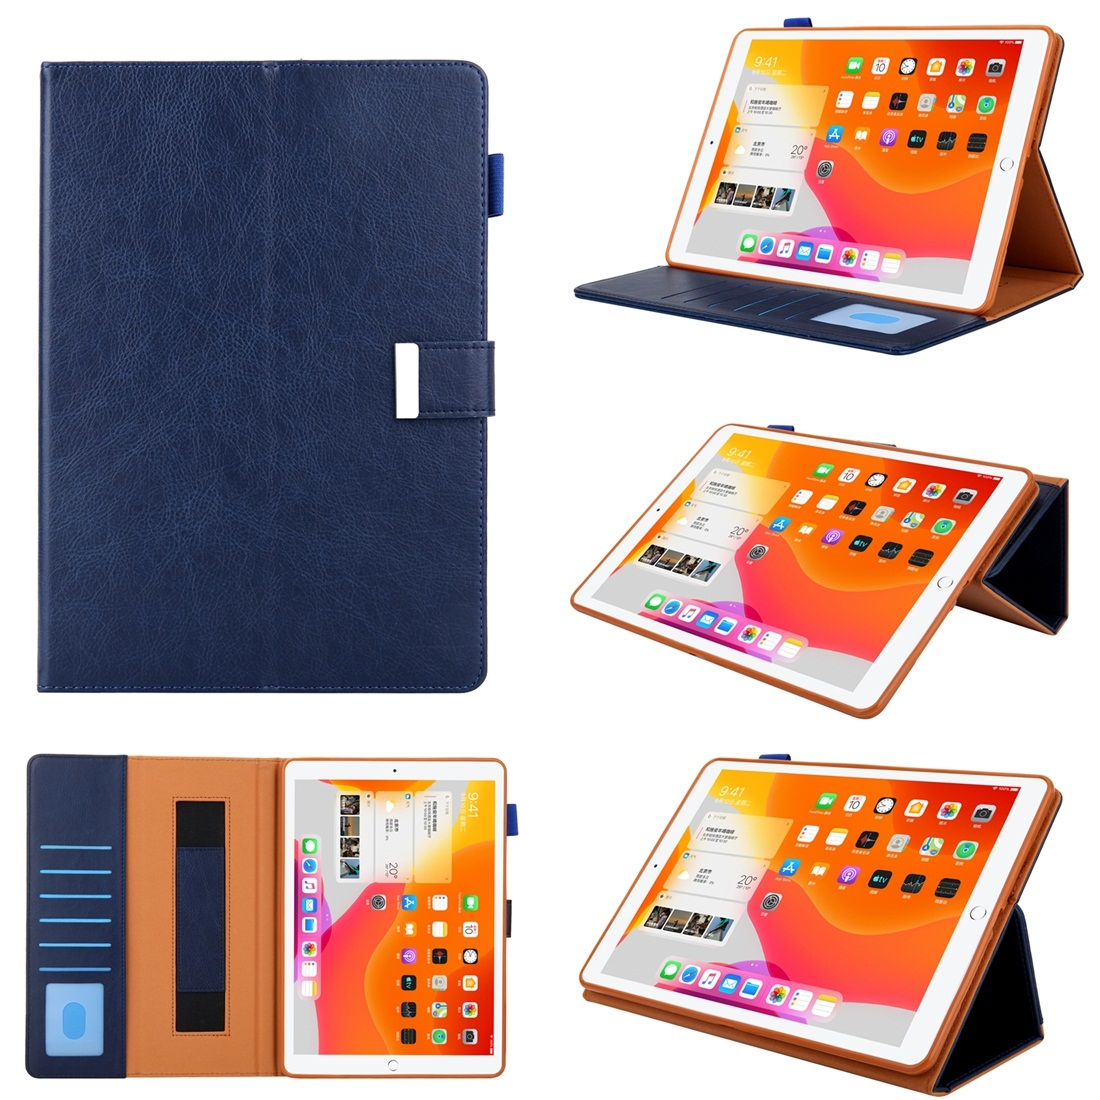 iPad 7th Generation Case Fits iPad 5/6/7/8/9, Features A Trendy Leather Design & Auto Sleep (Blue)